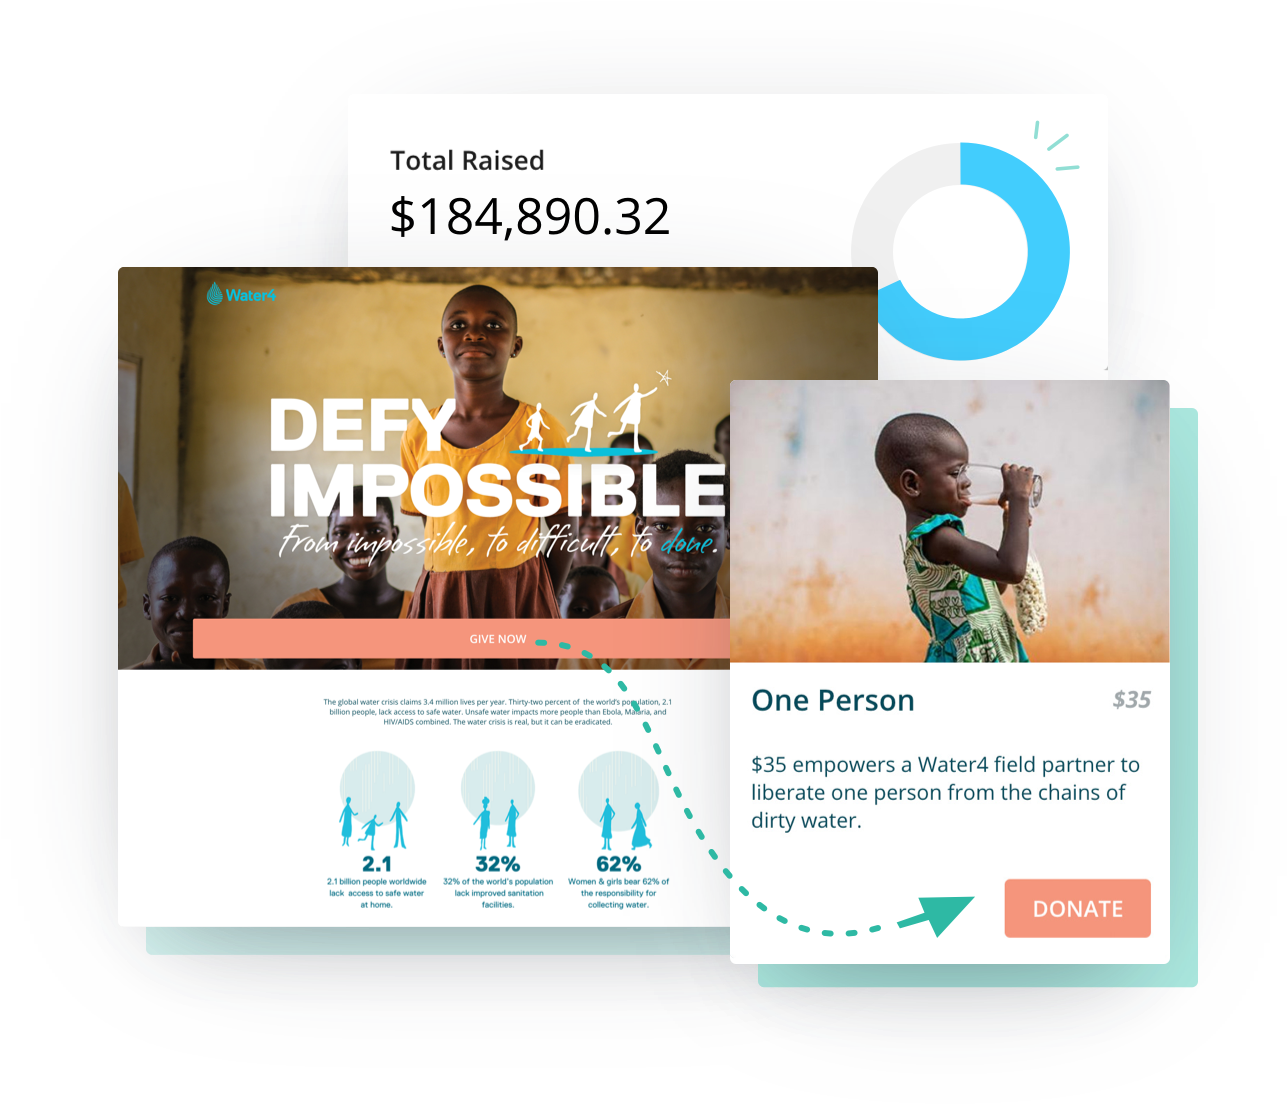 Crowdfunding campaign examples for desktop and mobile screens highlighting donate conversion points for both pages